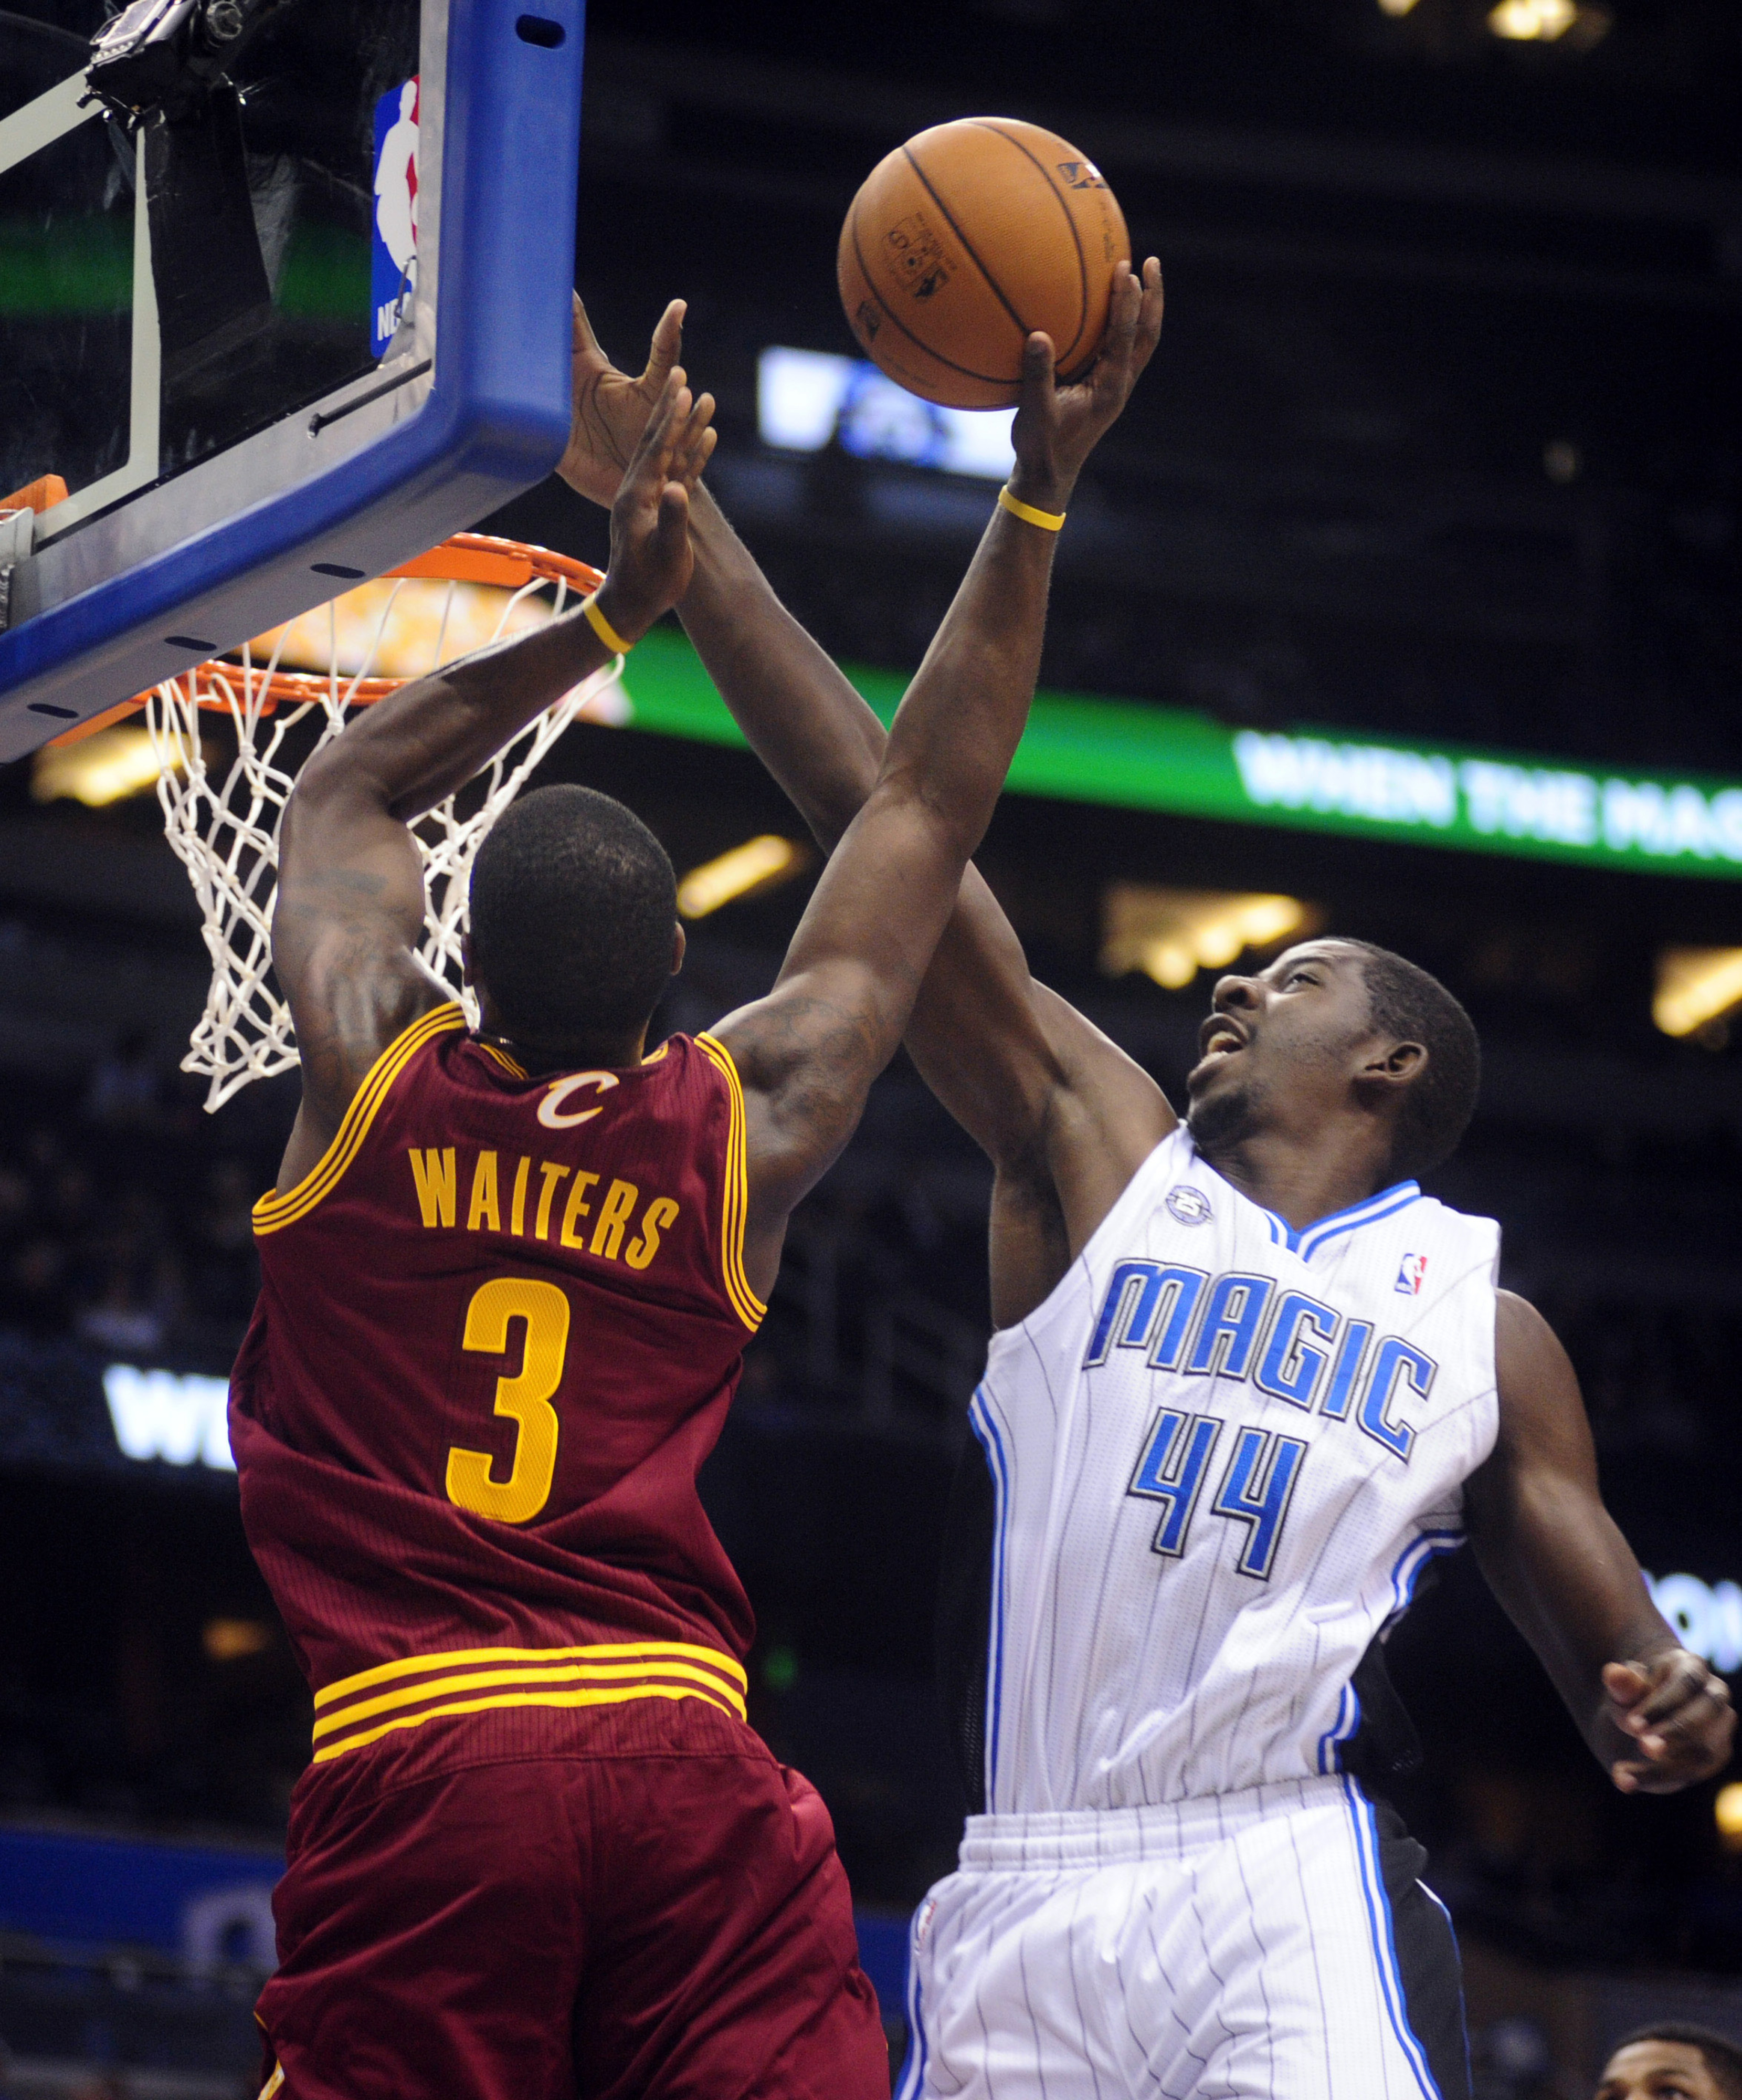 Dion Waiters and Andrew Nicholson